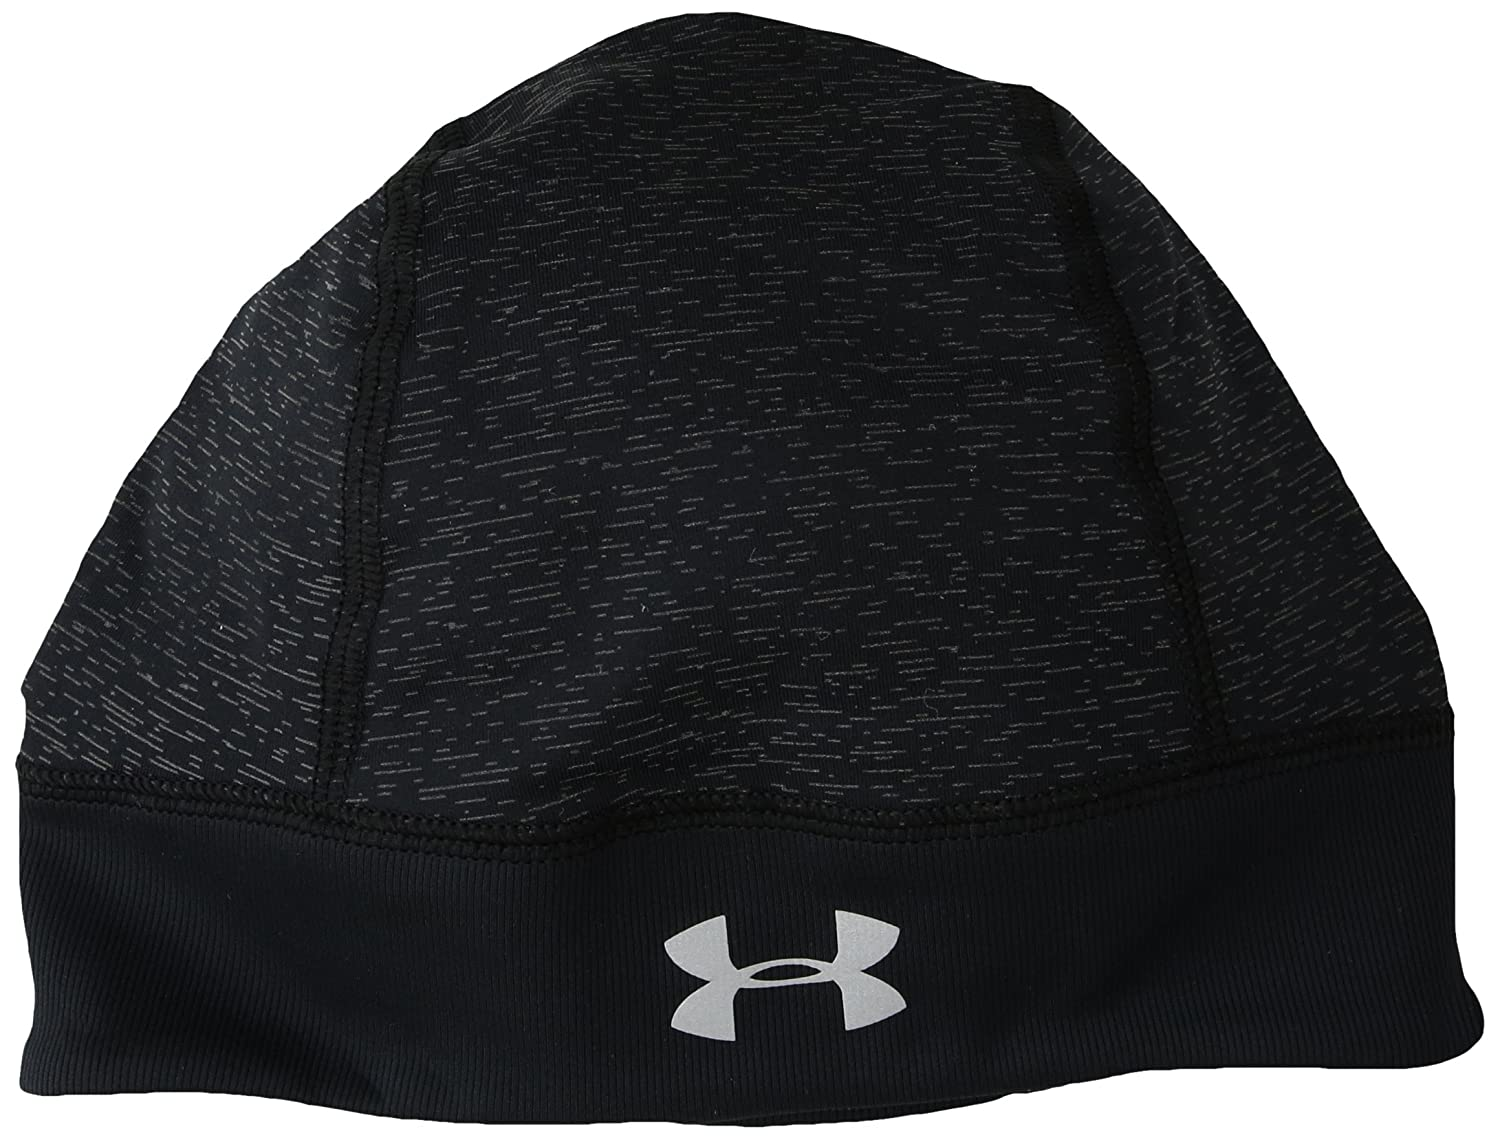 c996fcd225e Amazon.com  Under Armour Men s Storm Run Beanie